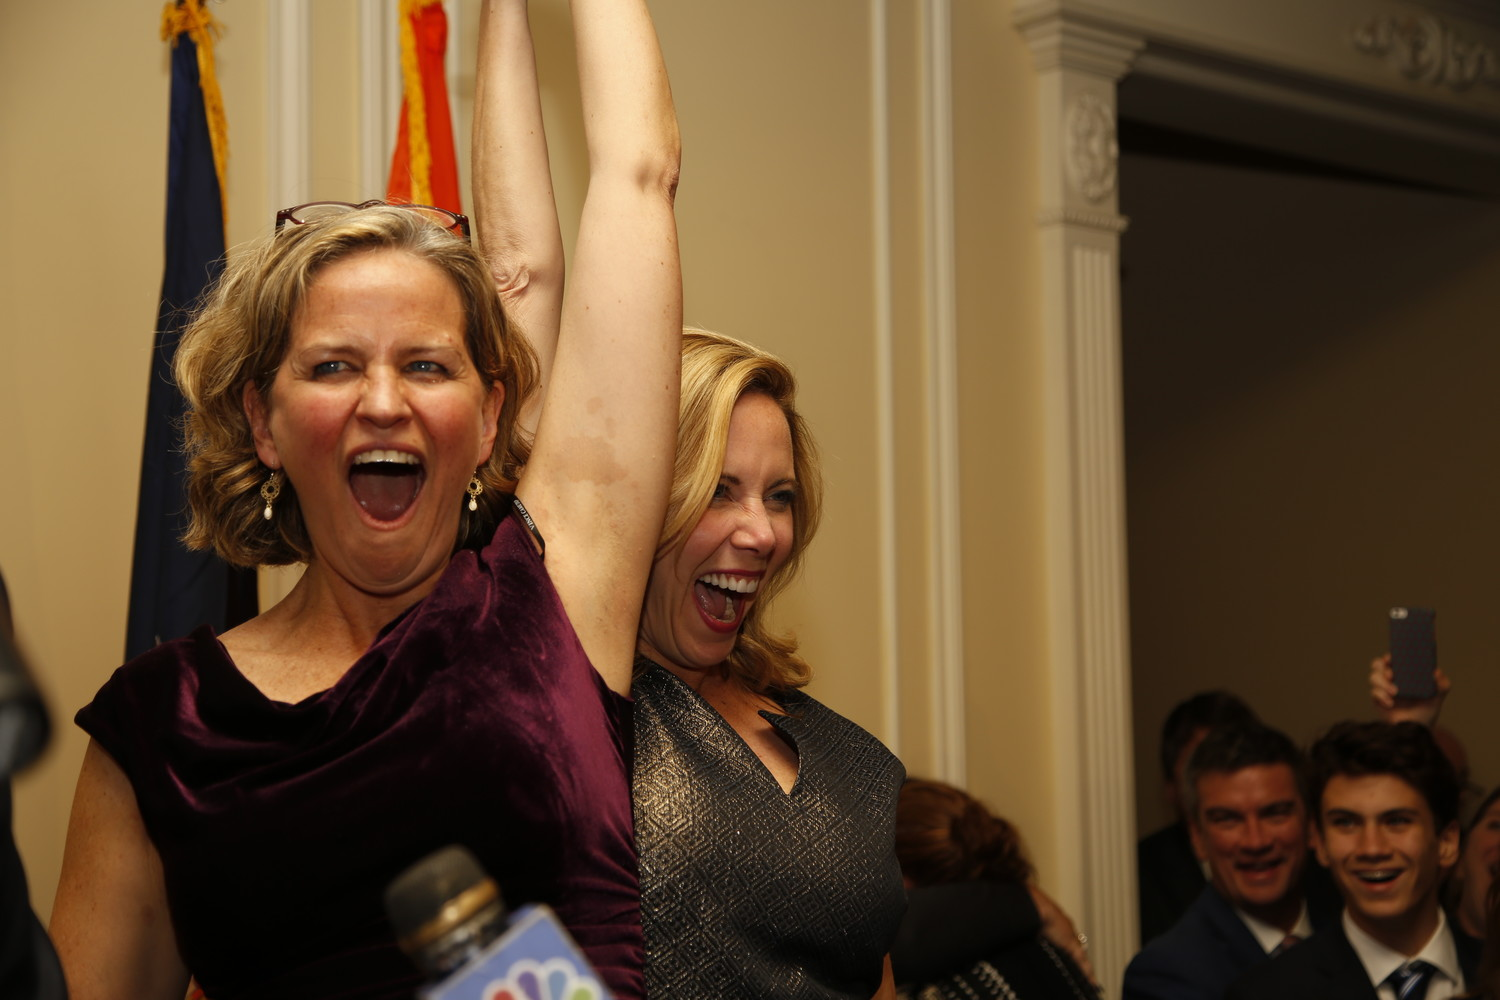 County executive-elect Laura Curran, left, the first woman ever to claim that title, celebrated with Laura Gillen, who also made history Tuesday night when she defeated incumbent Anthony Santino to become the first Democratic Hempstead town supervisor.